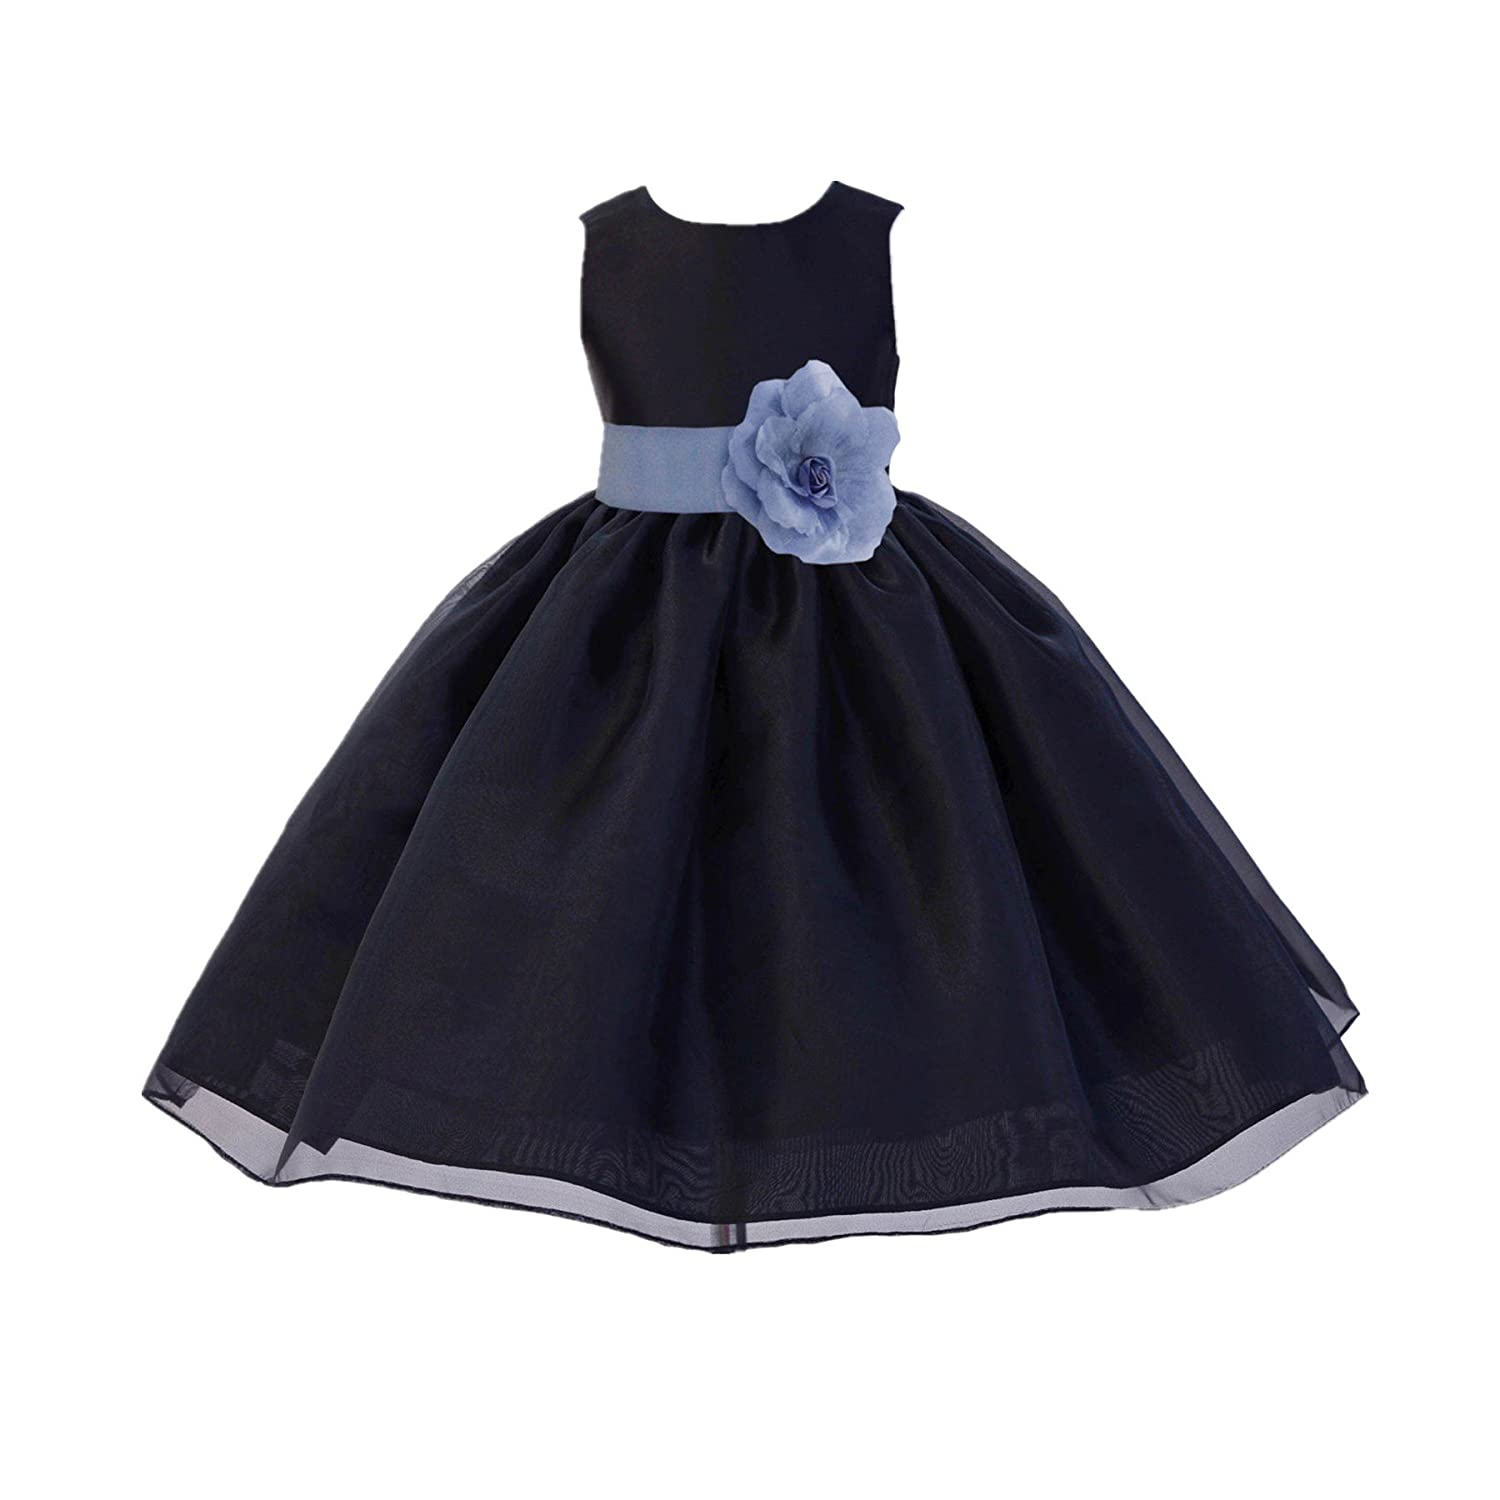 160be622ad0 We used an additional petticoat that is not included with the dress.  Material  Satin Poly   Satin Lining   Polyester Tulle